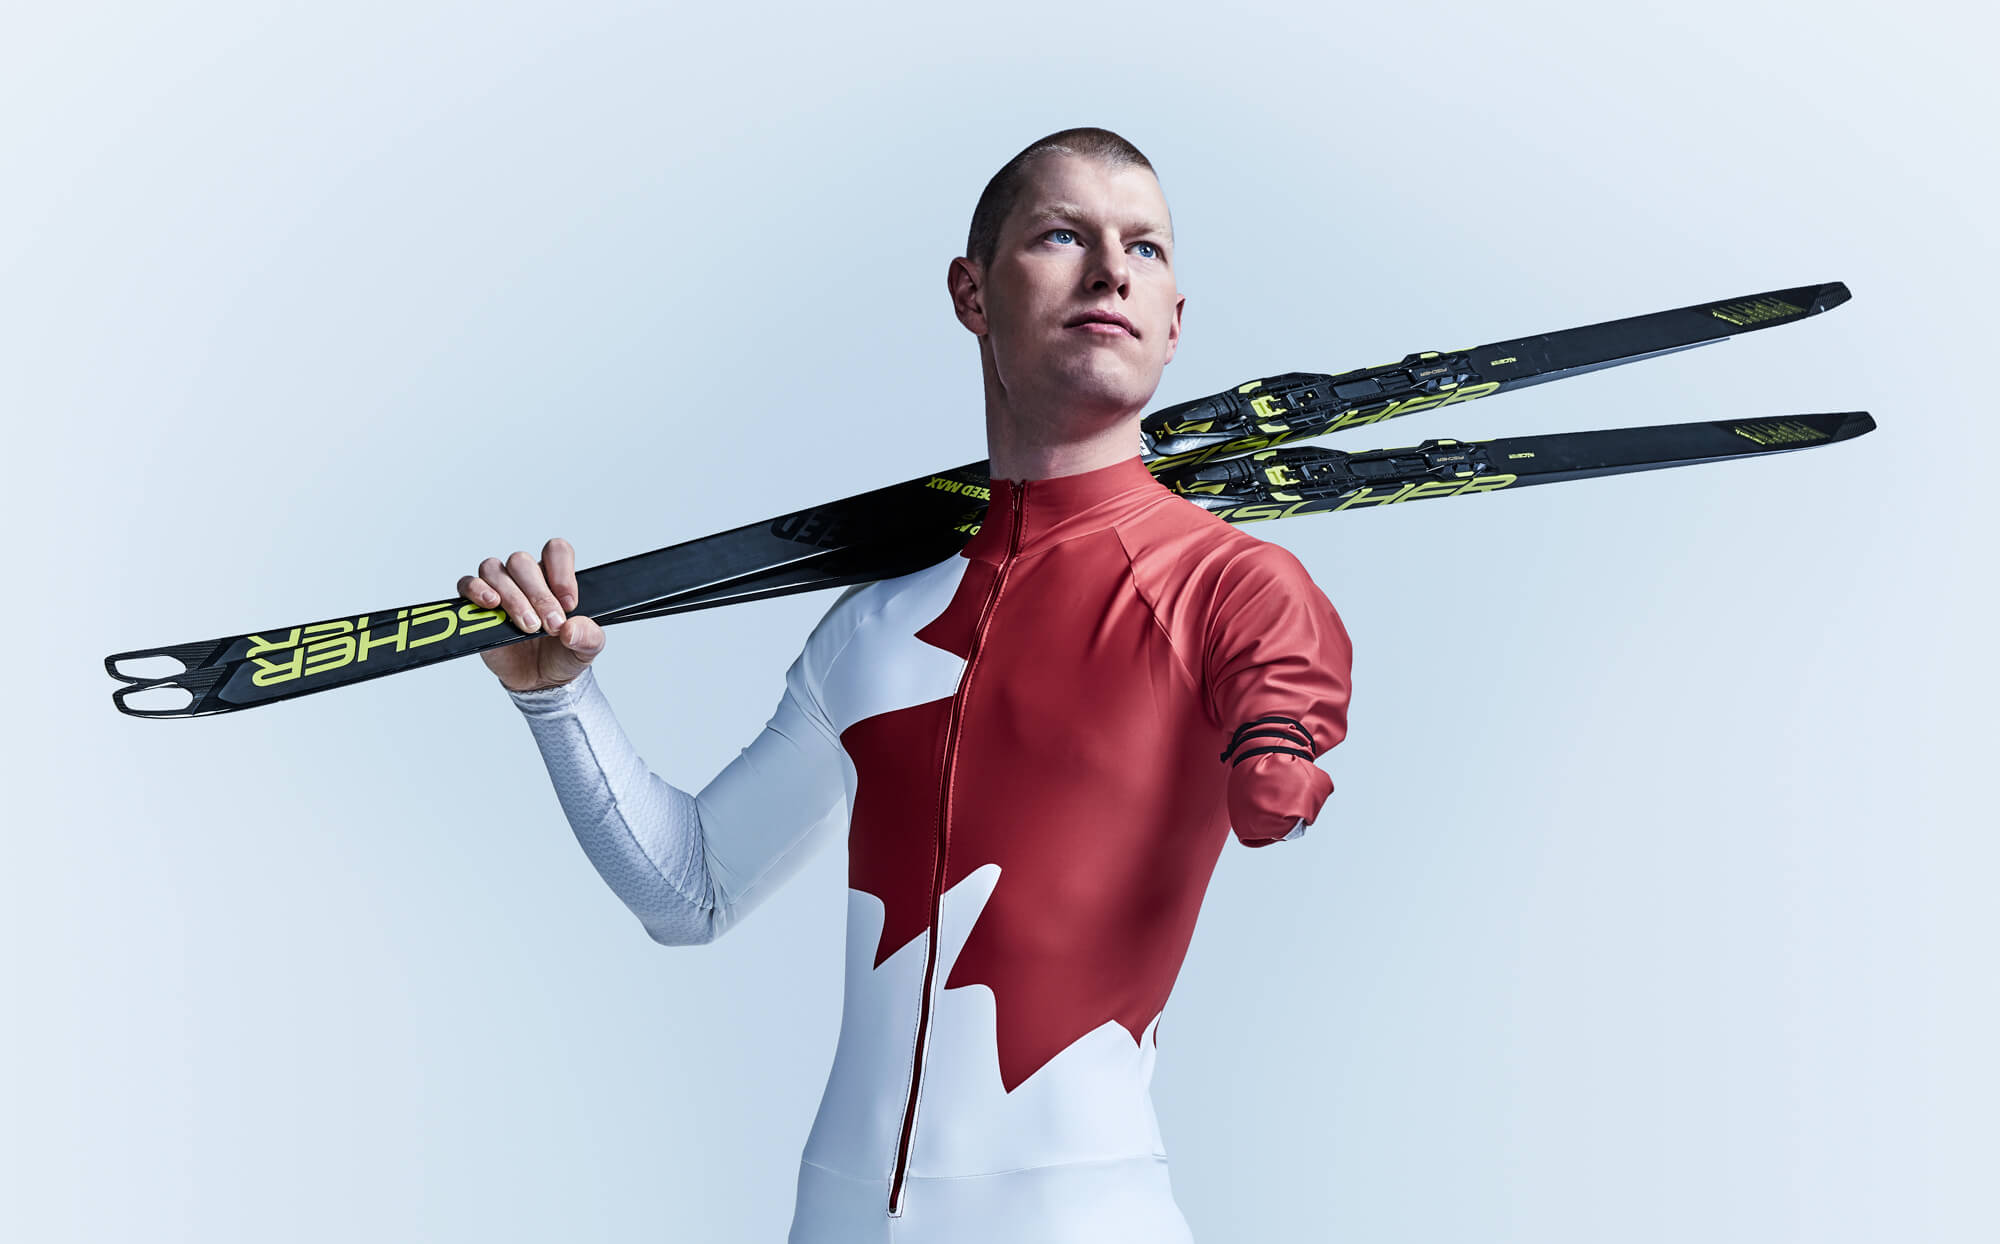 Unified Content, Unified Content Toronto, Aaron Cobb, EnRoute, Skiing, Team Canada, Canadians, Athletes, Canadian Athlete, Canadian Athletes, Professional Skiers, Athlete portrait,